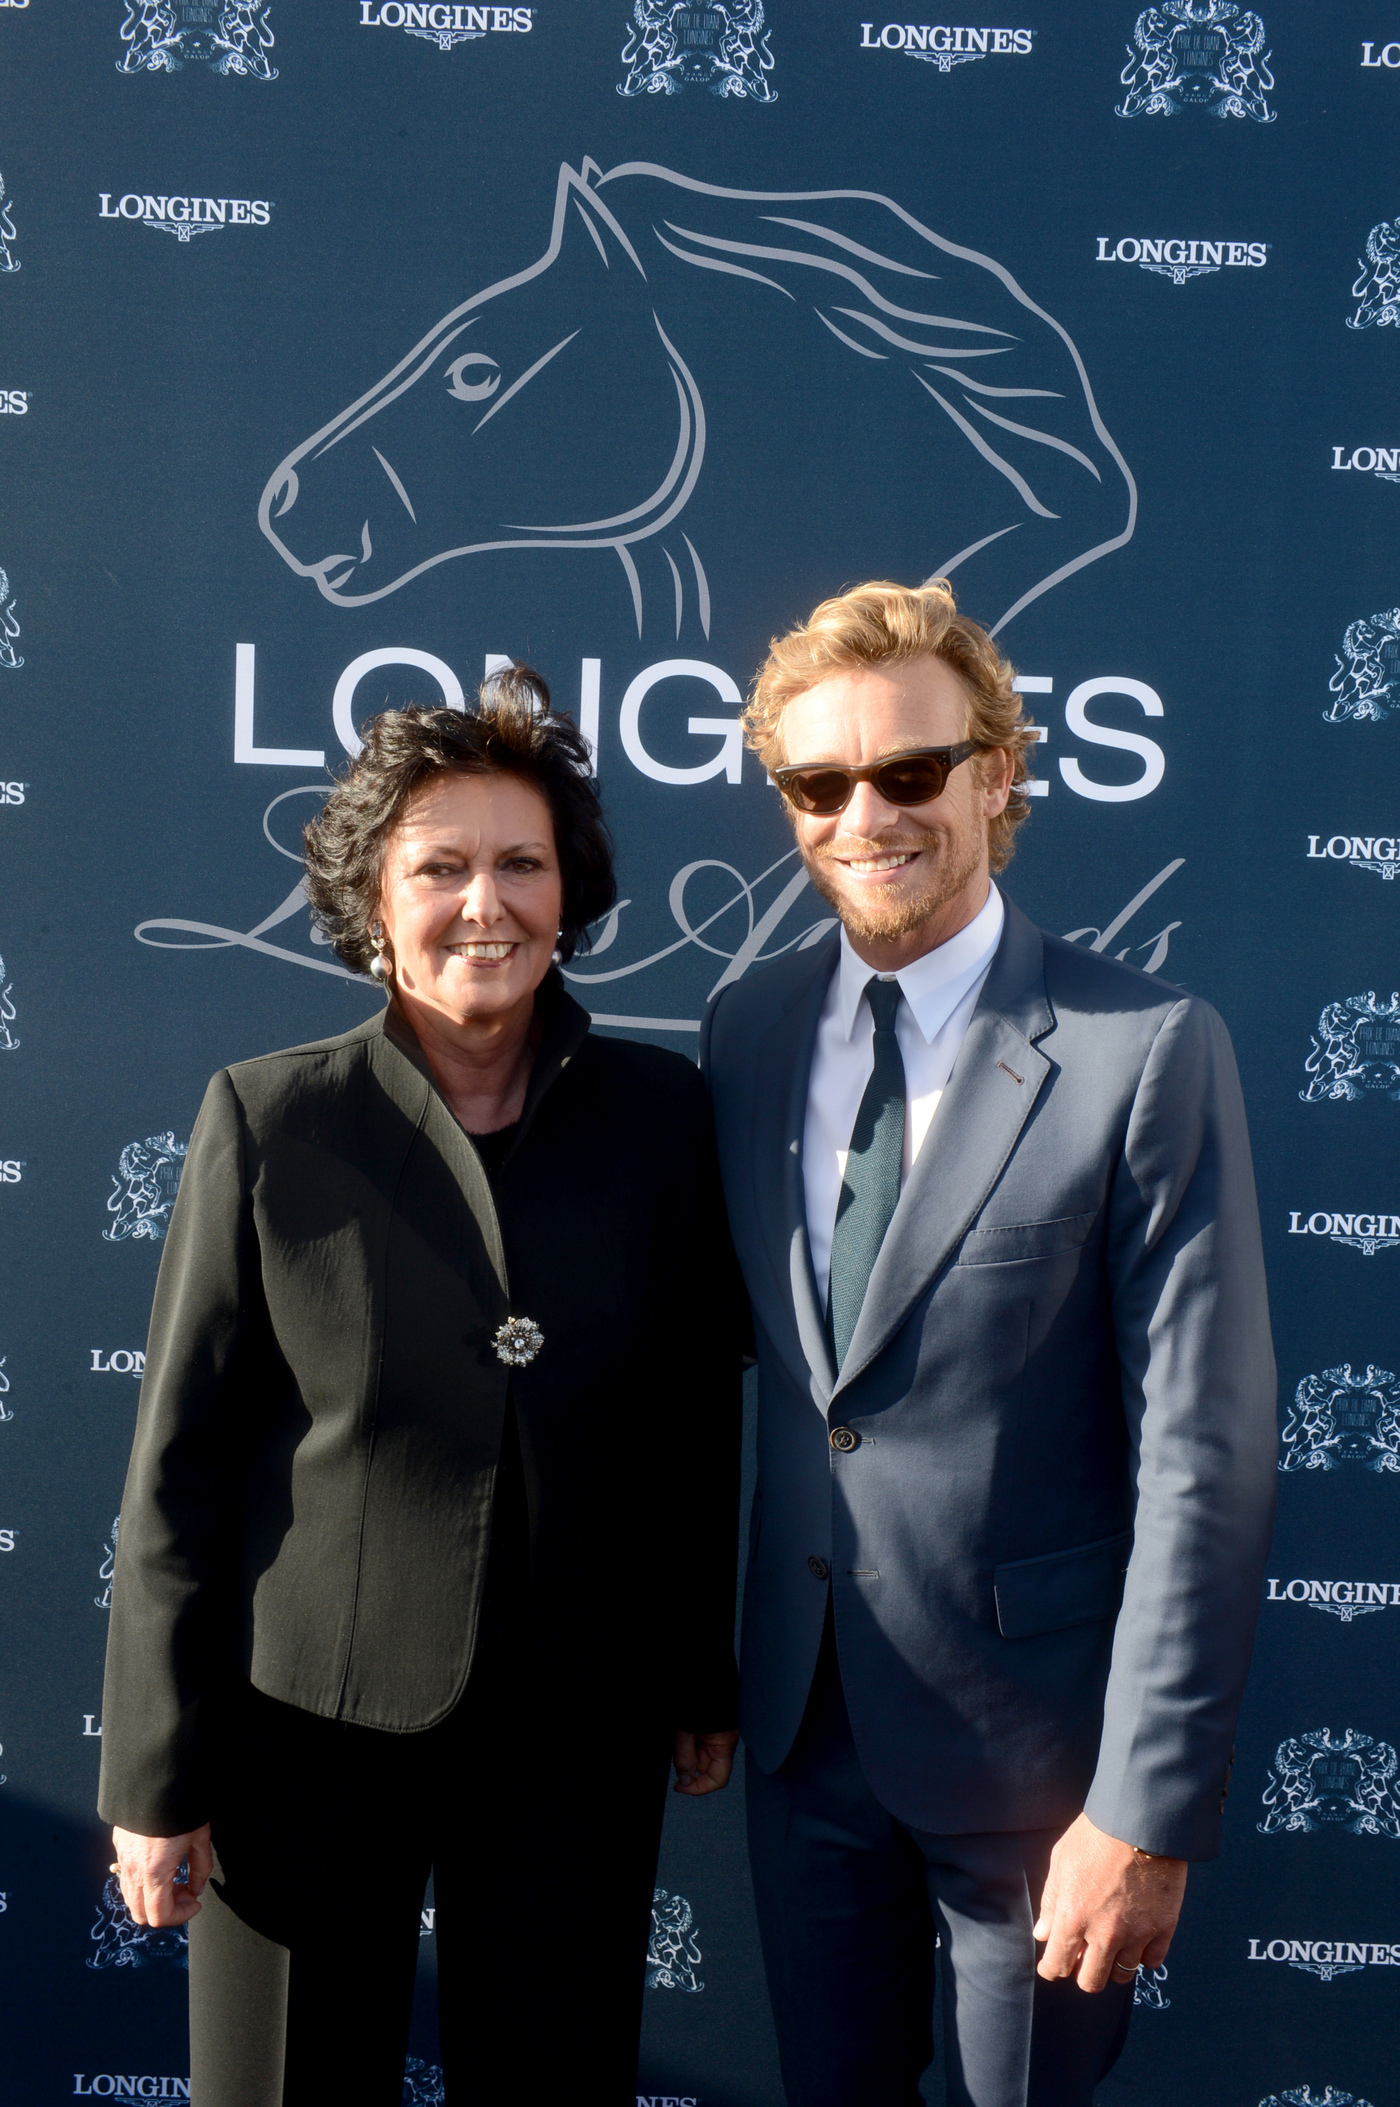 Longines Flat Racing Event: Longines Ladies Awards 2